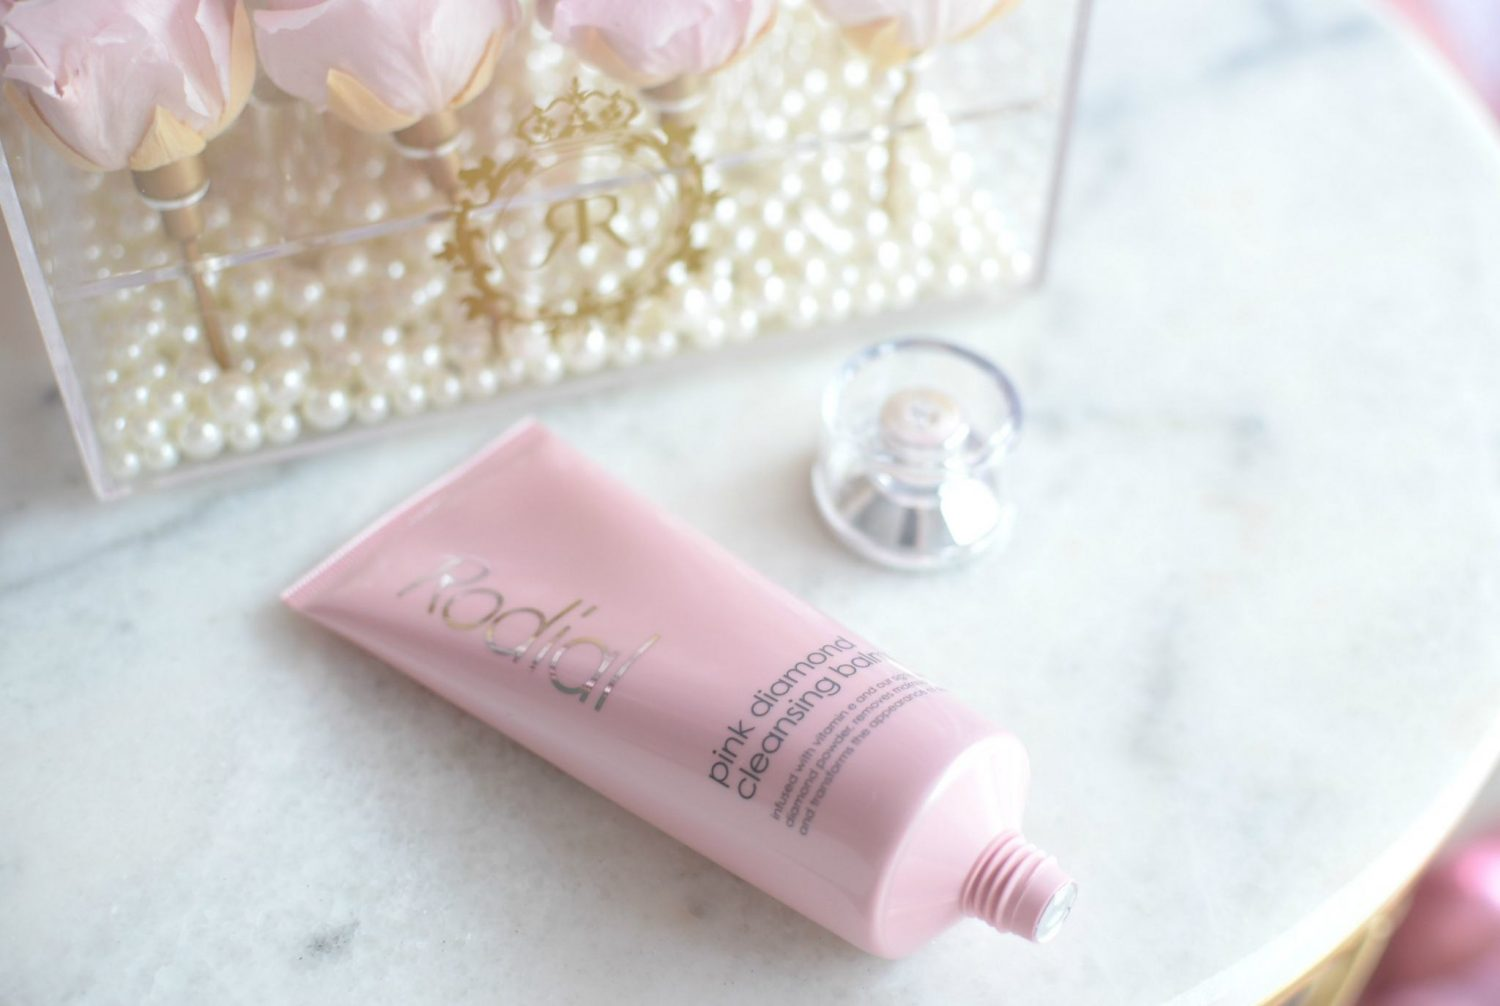 Rodial Pink Diamond Cleansing Balm